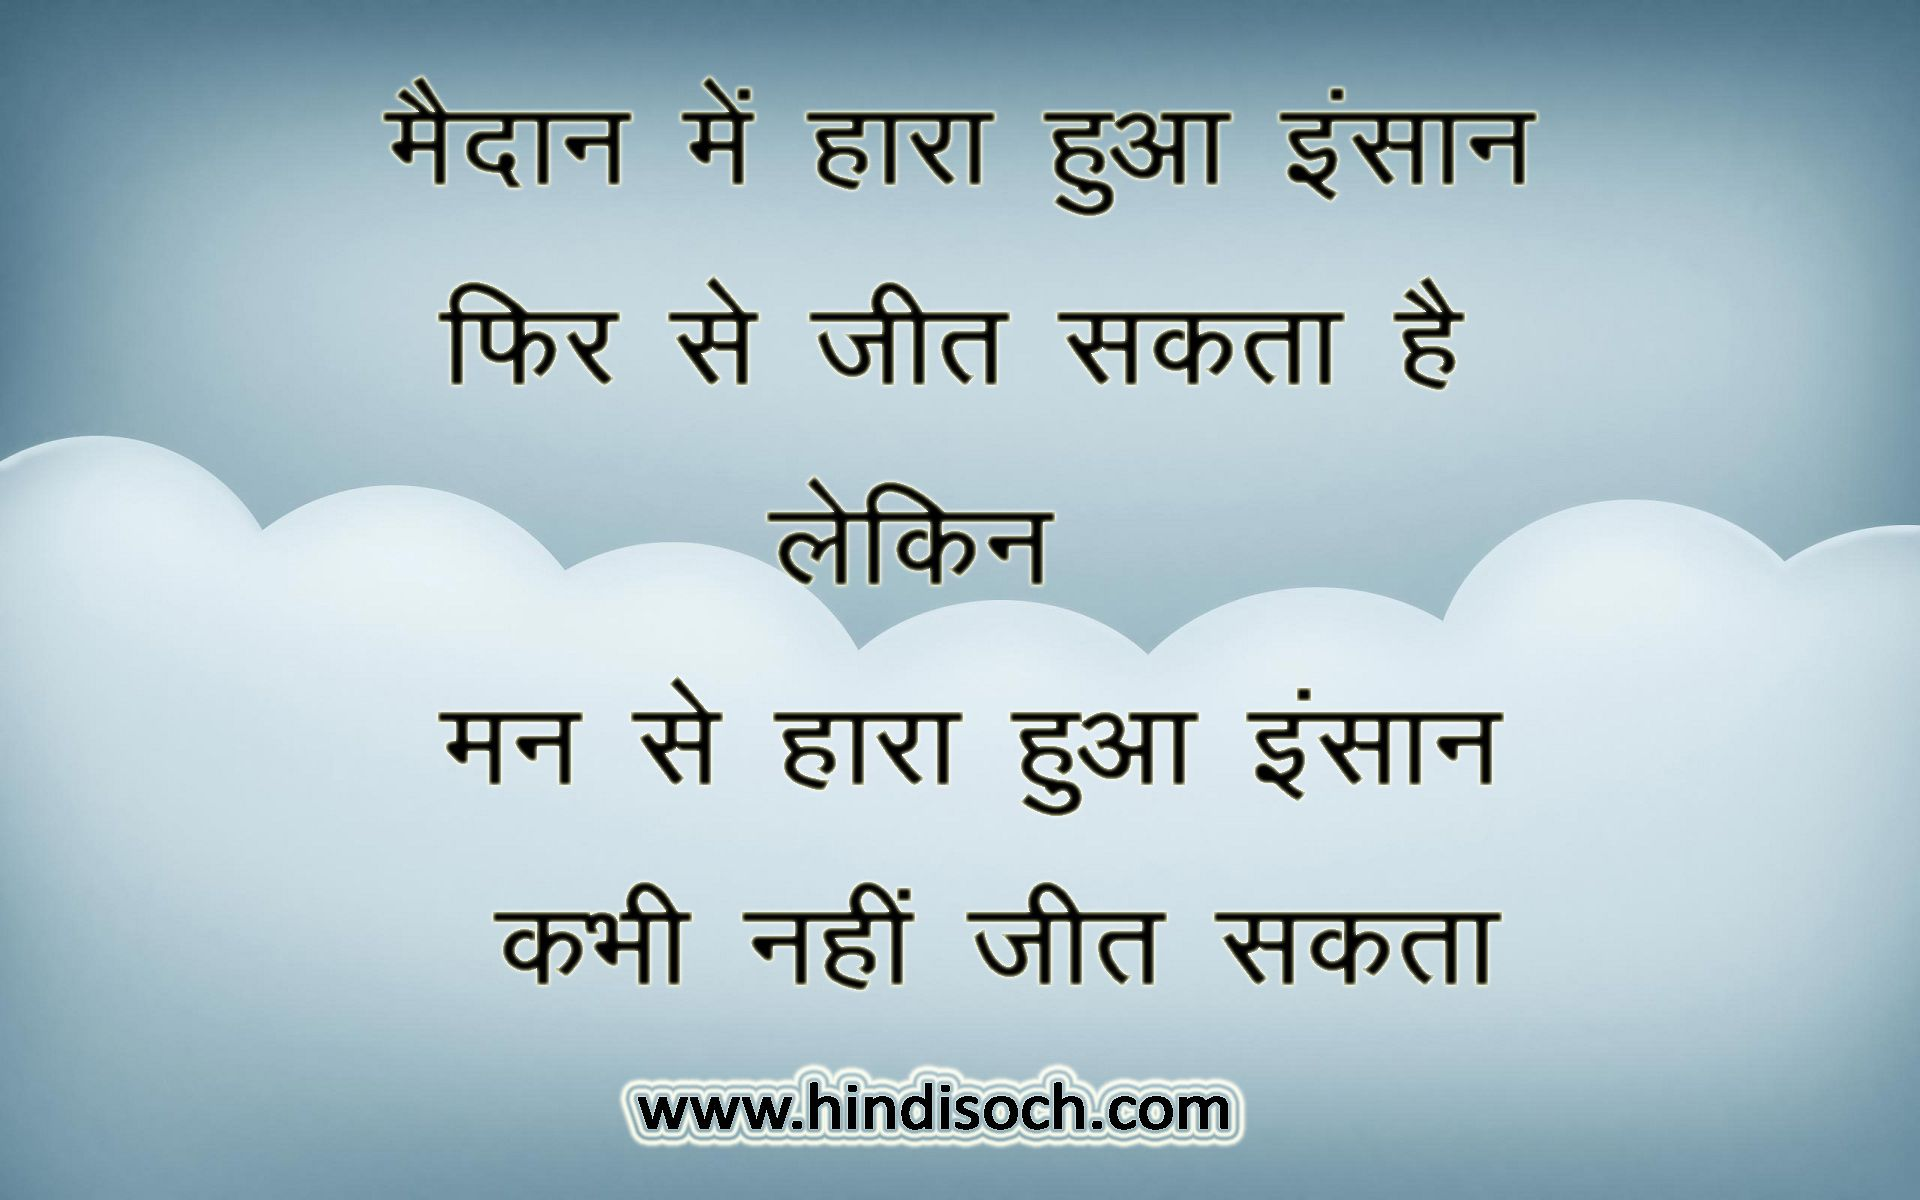 New Quotes On Love Life And Friendship In Hindi With: Best Motivational Quotes In Hindi